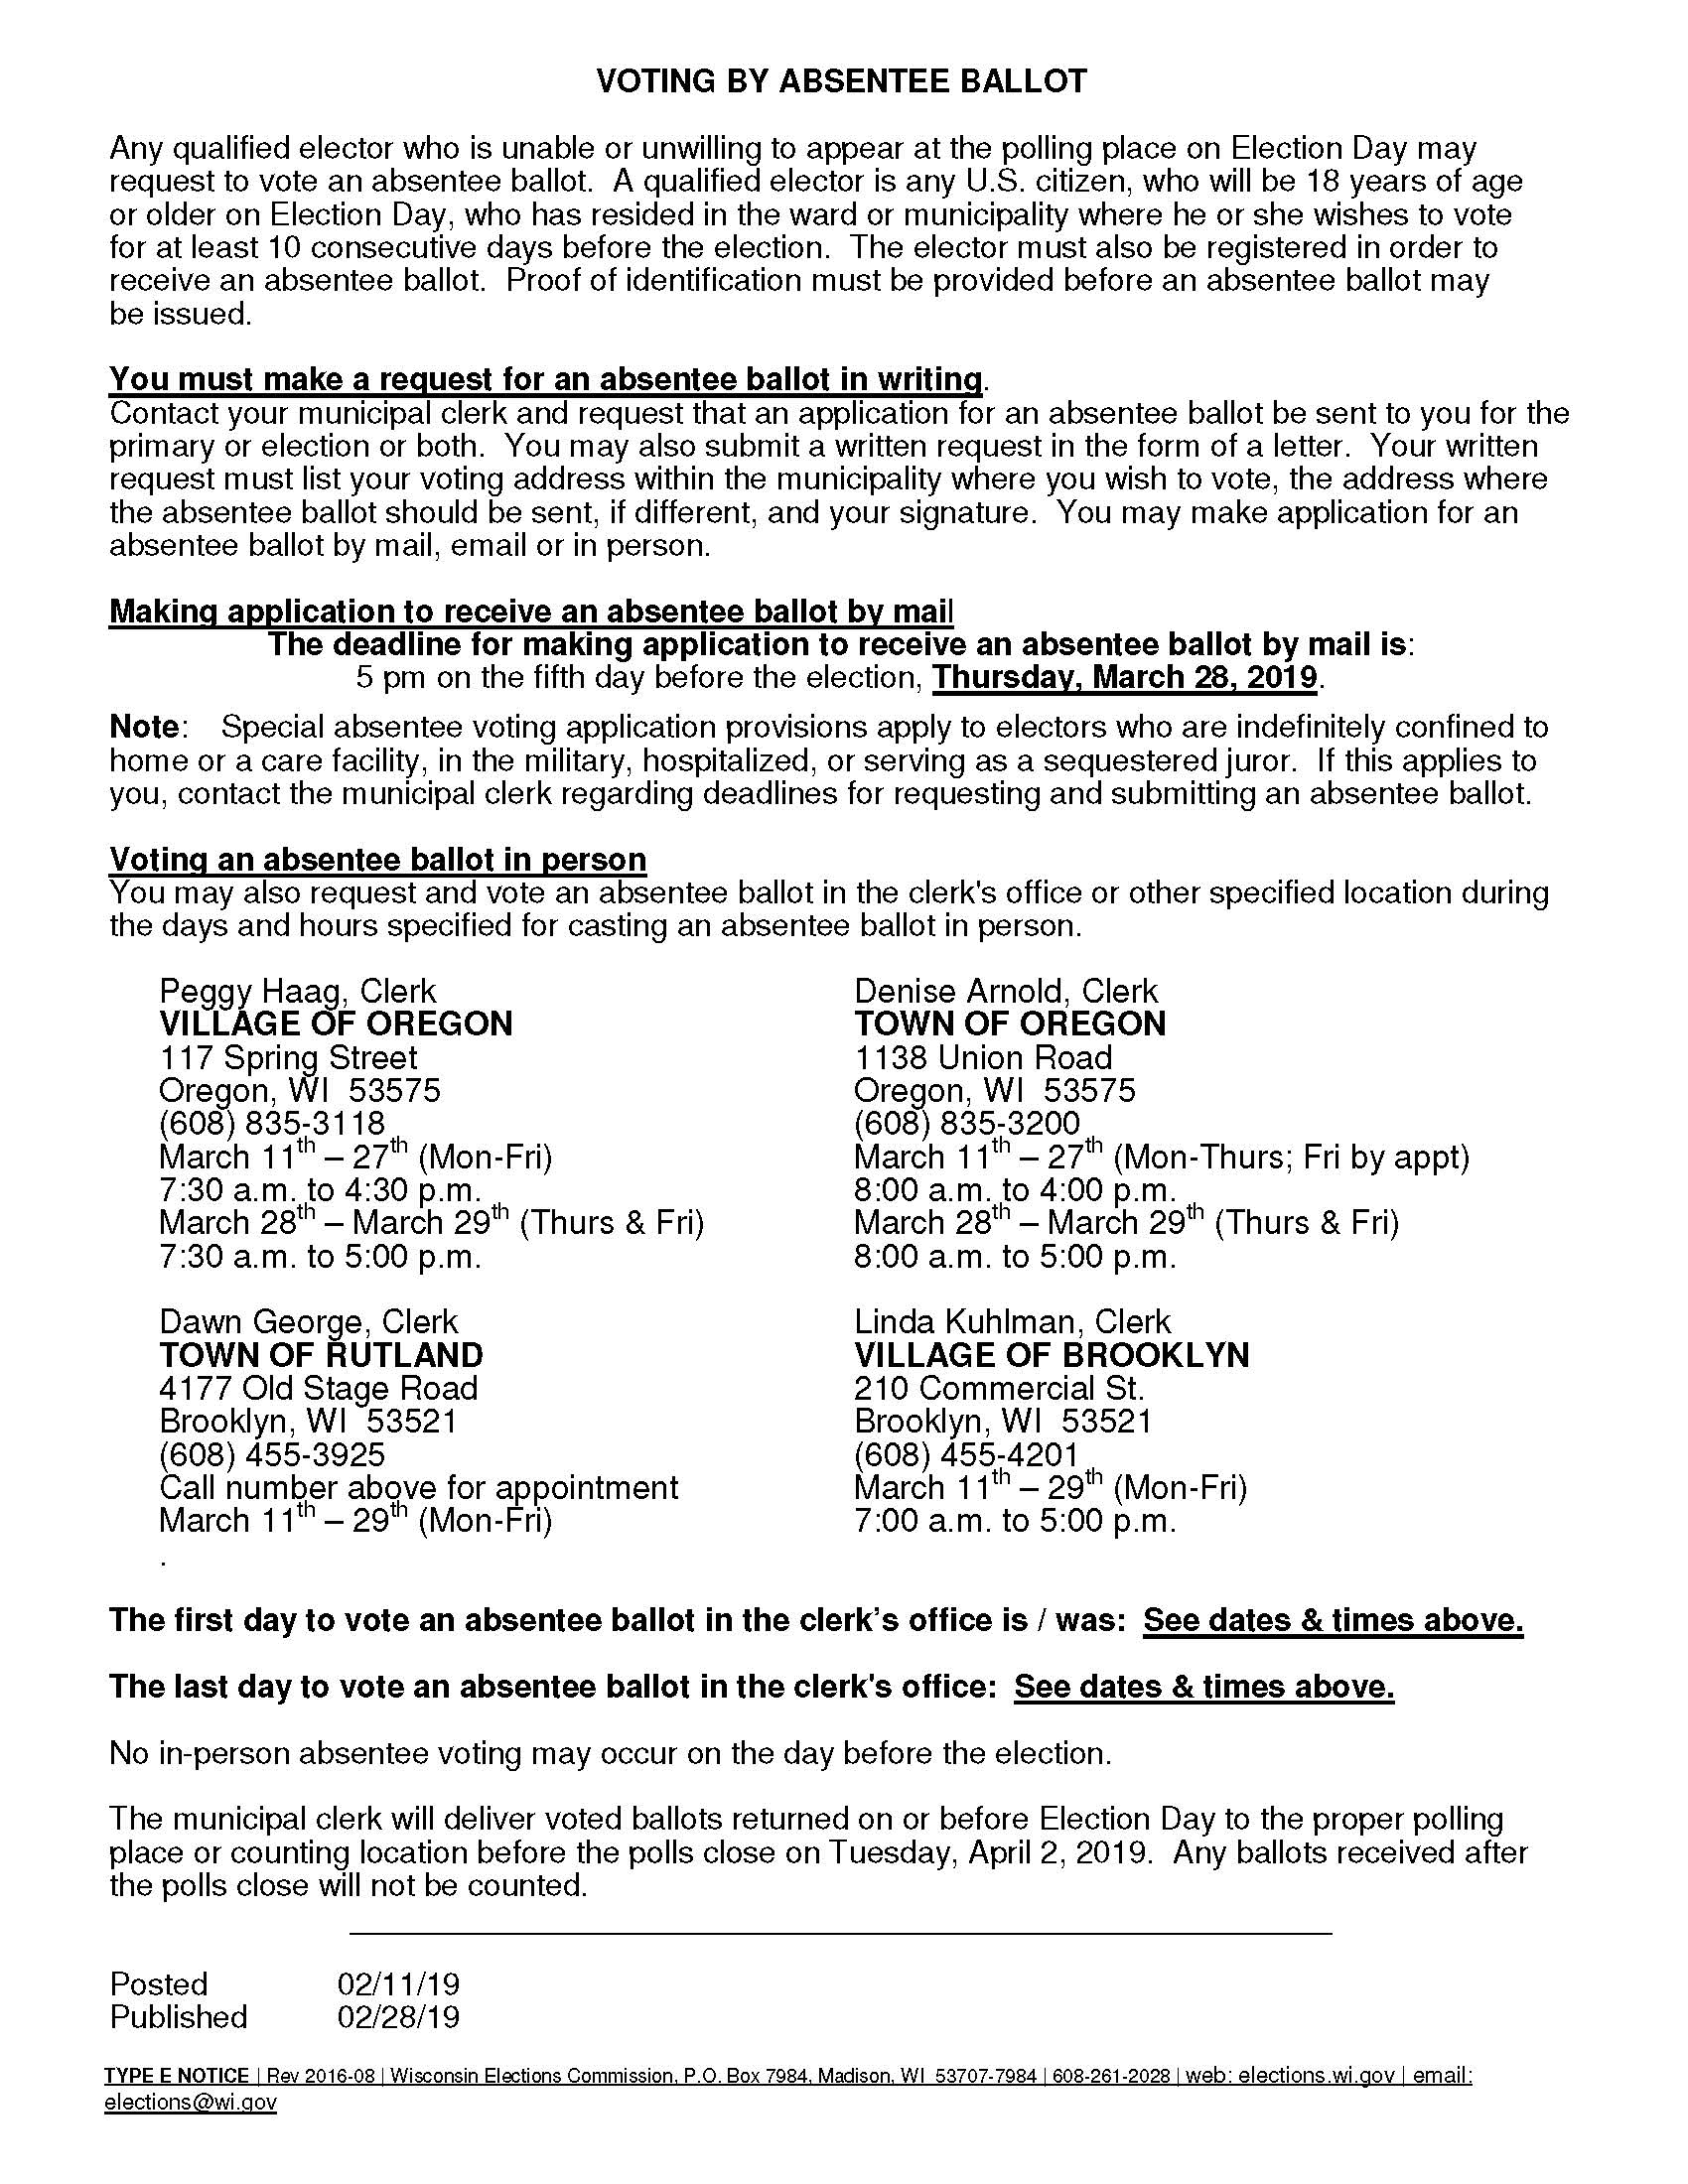 Type E Notice of Absentee Voting for April 2019